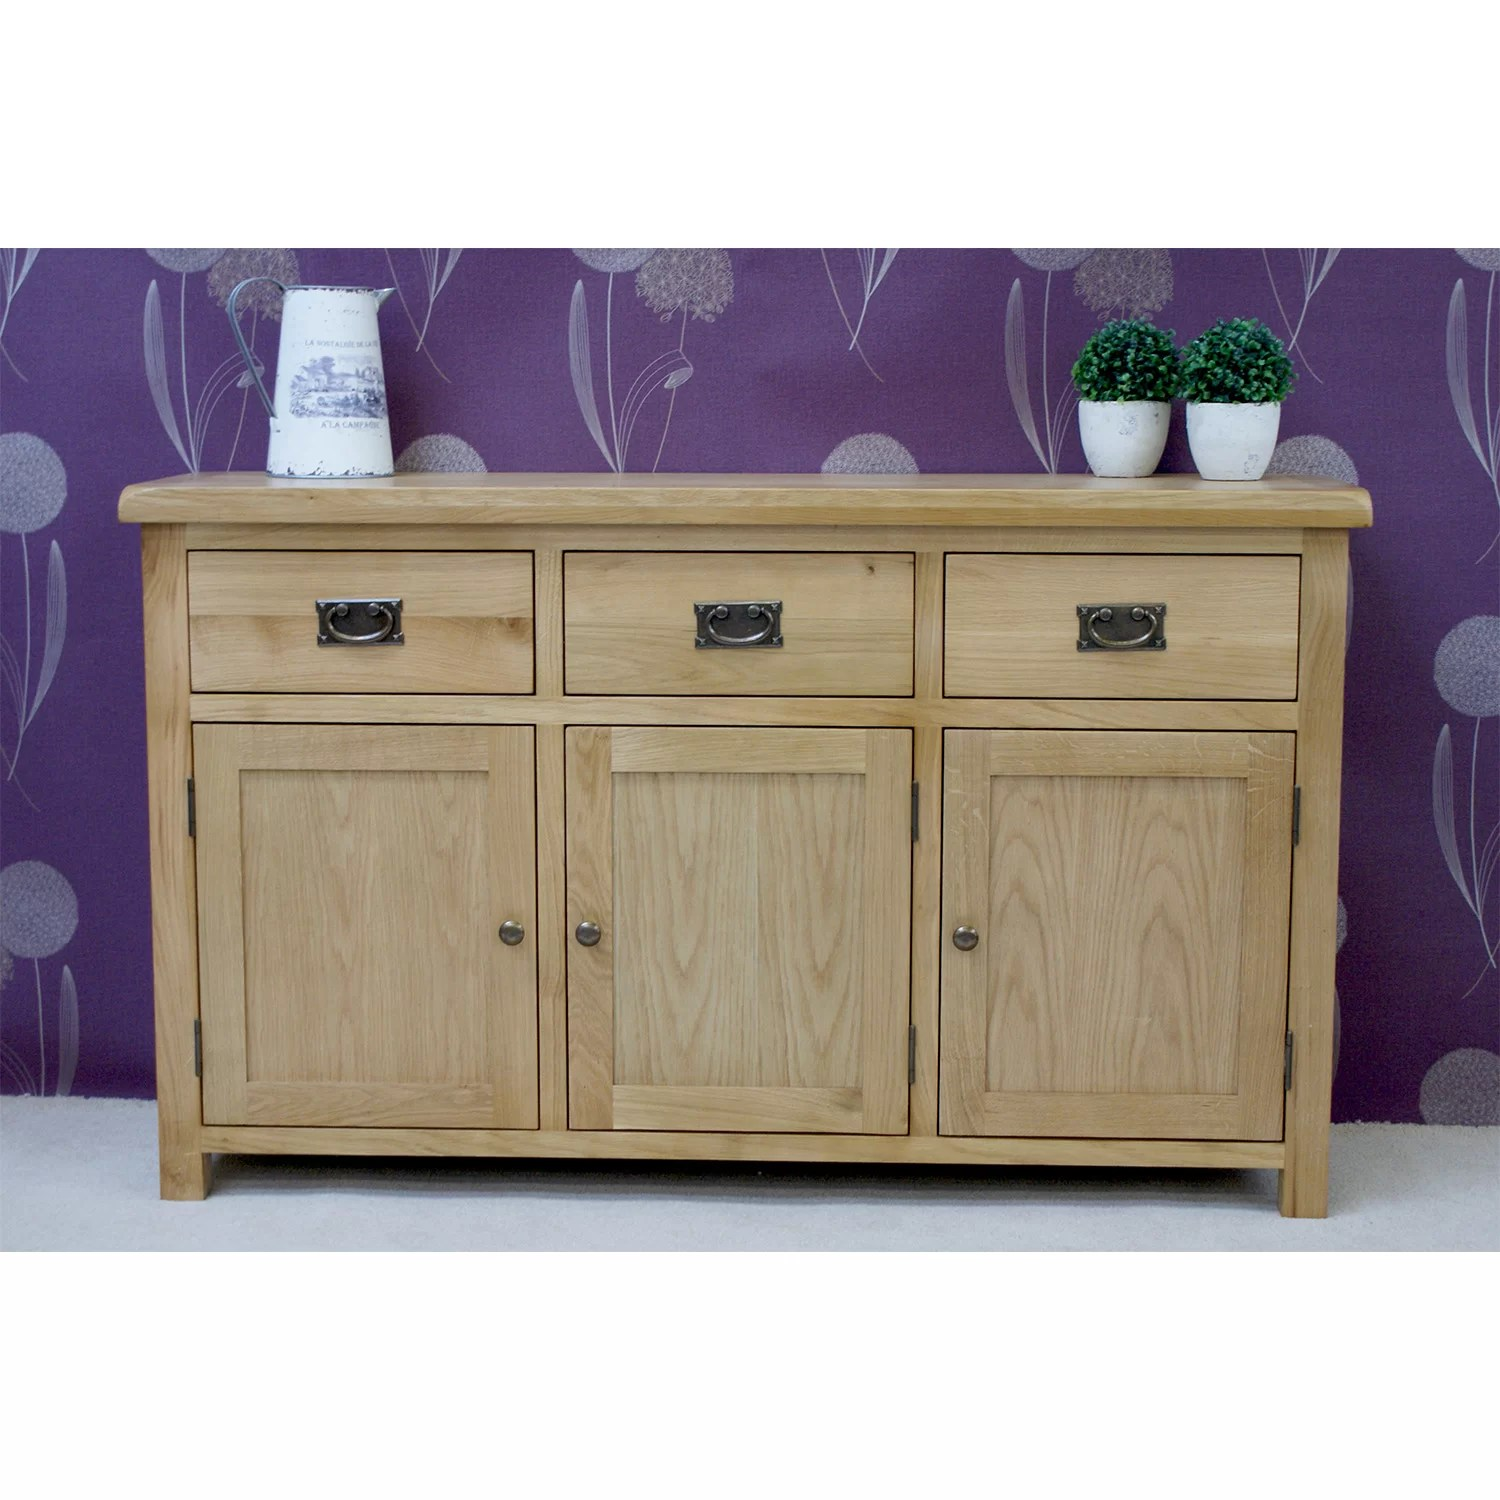 Le Meilleur Firmans Direct Farmhouse 3 Door 3 Drawer Sideboard Ce Mois Ci